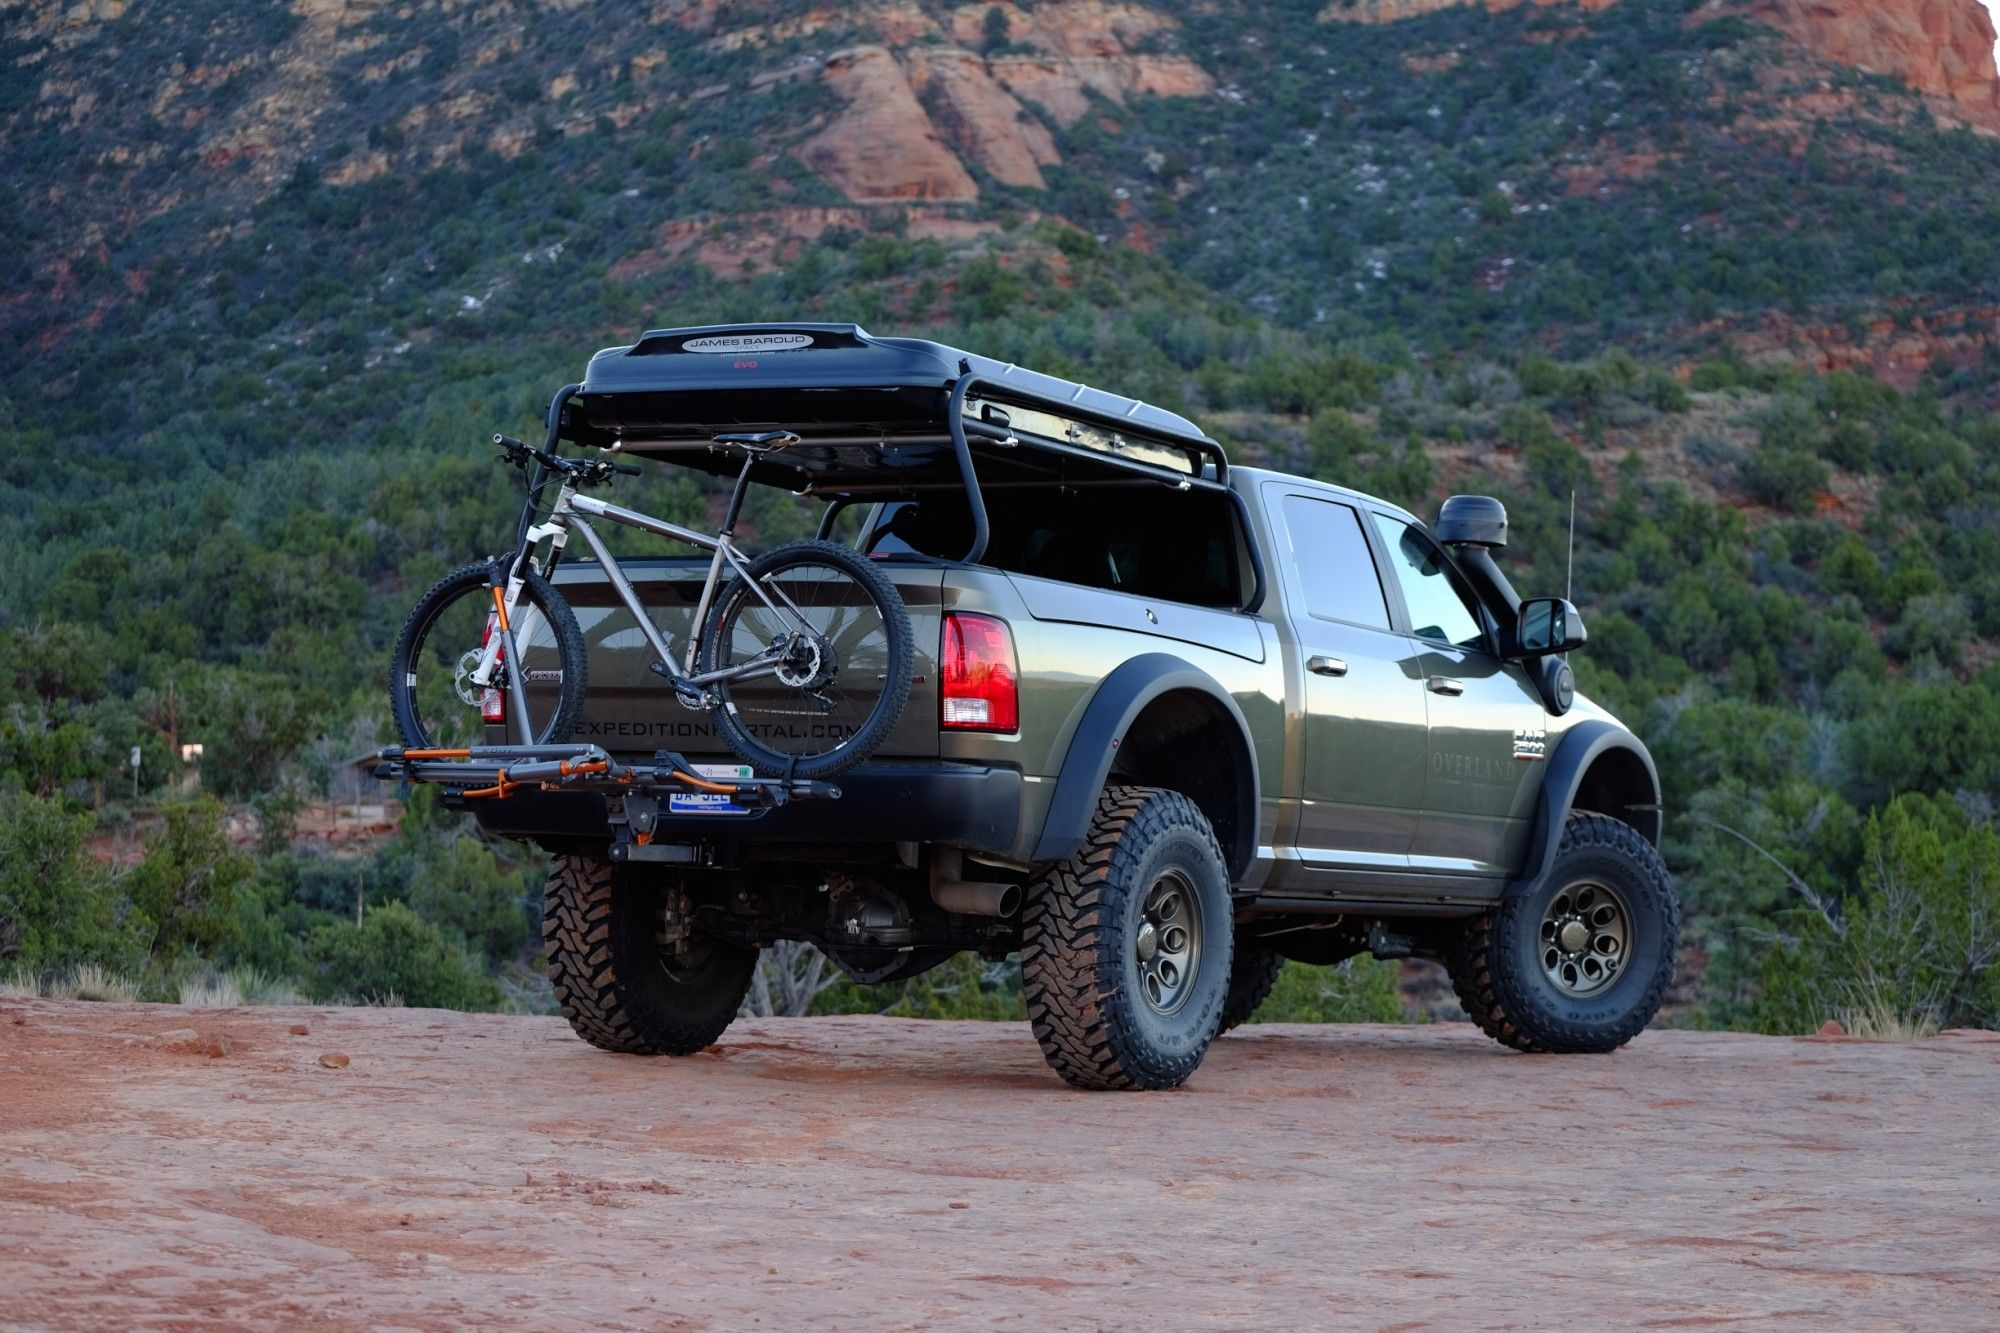 American Expedition Vehicles Ram 2500 project, now called